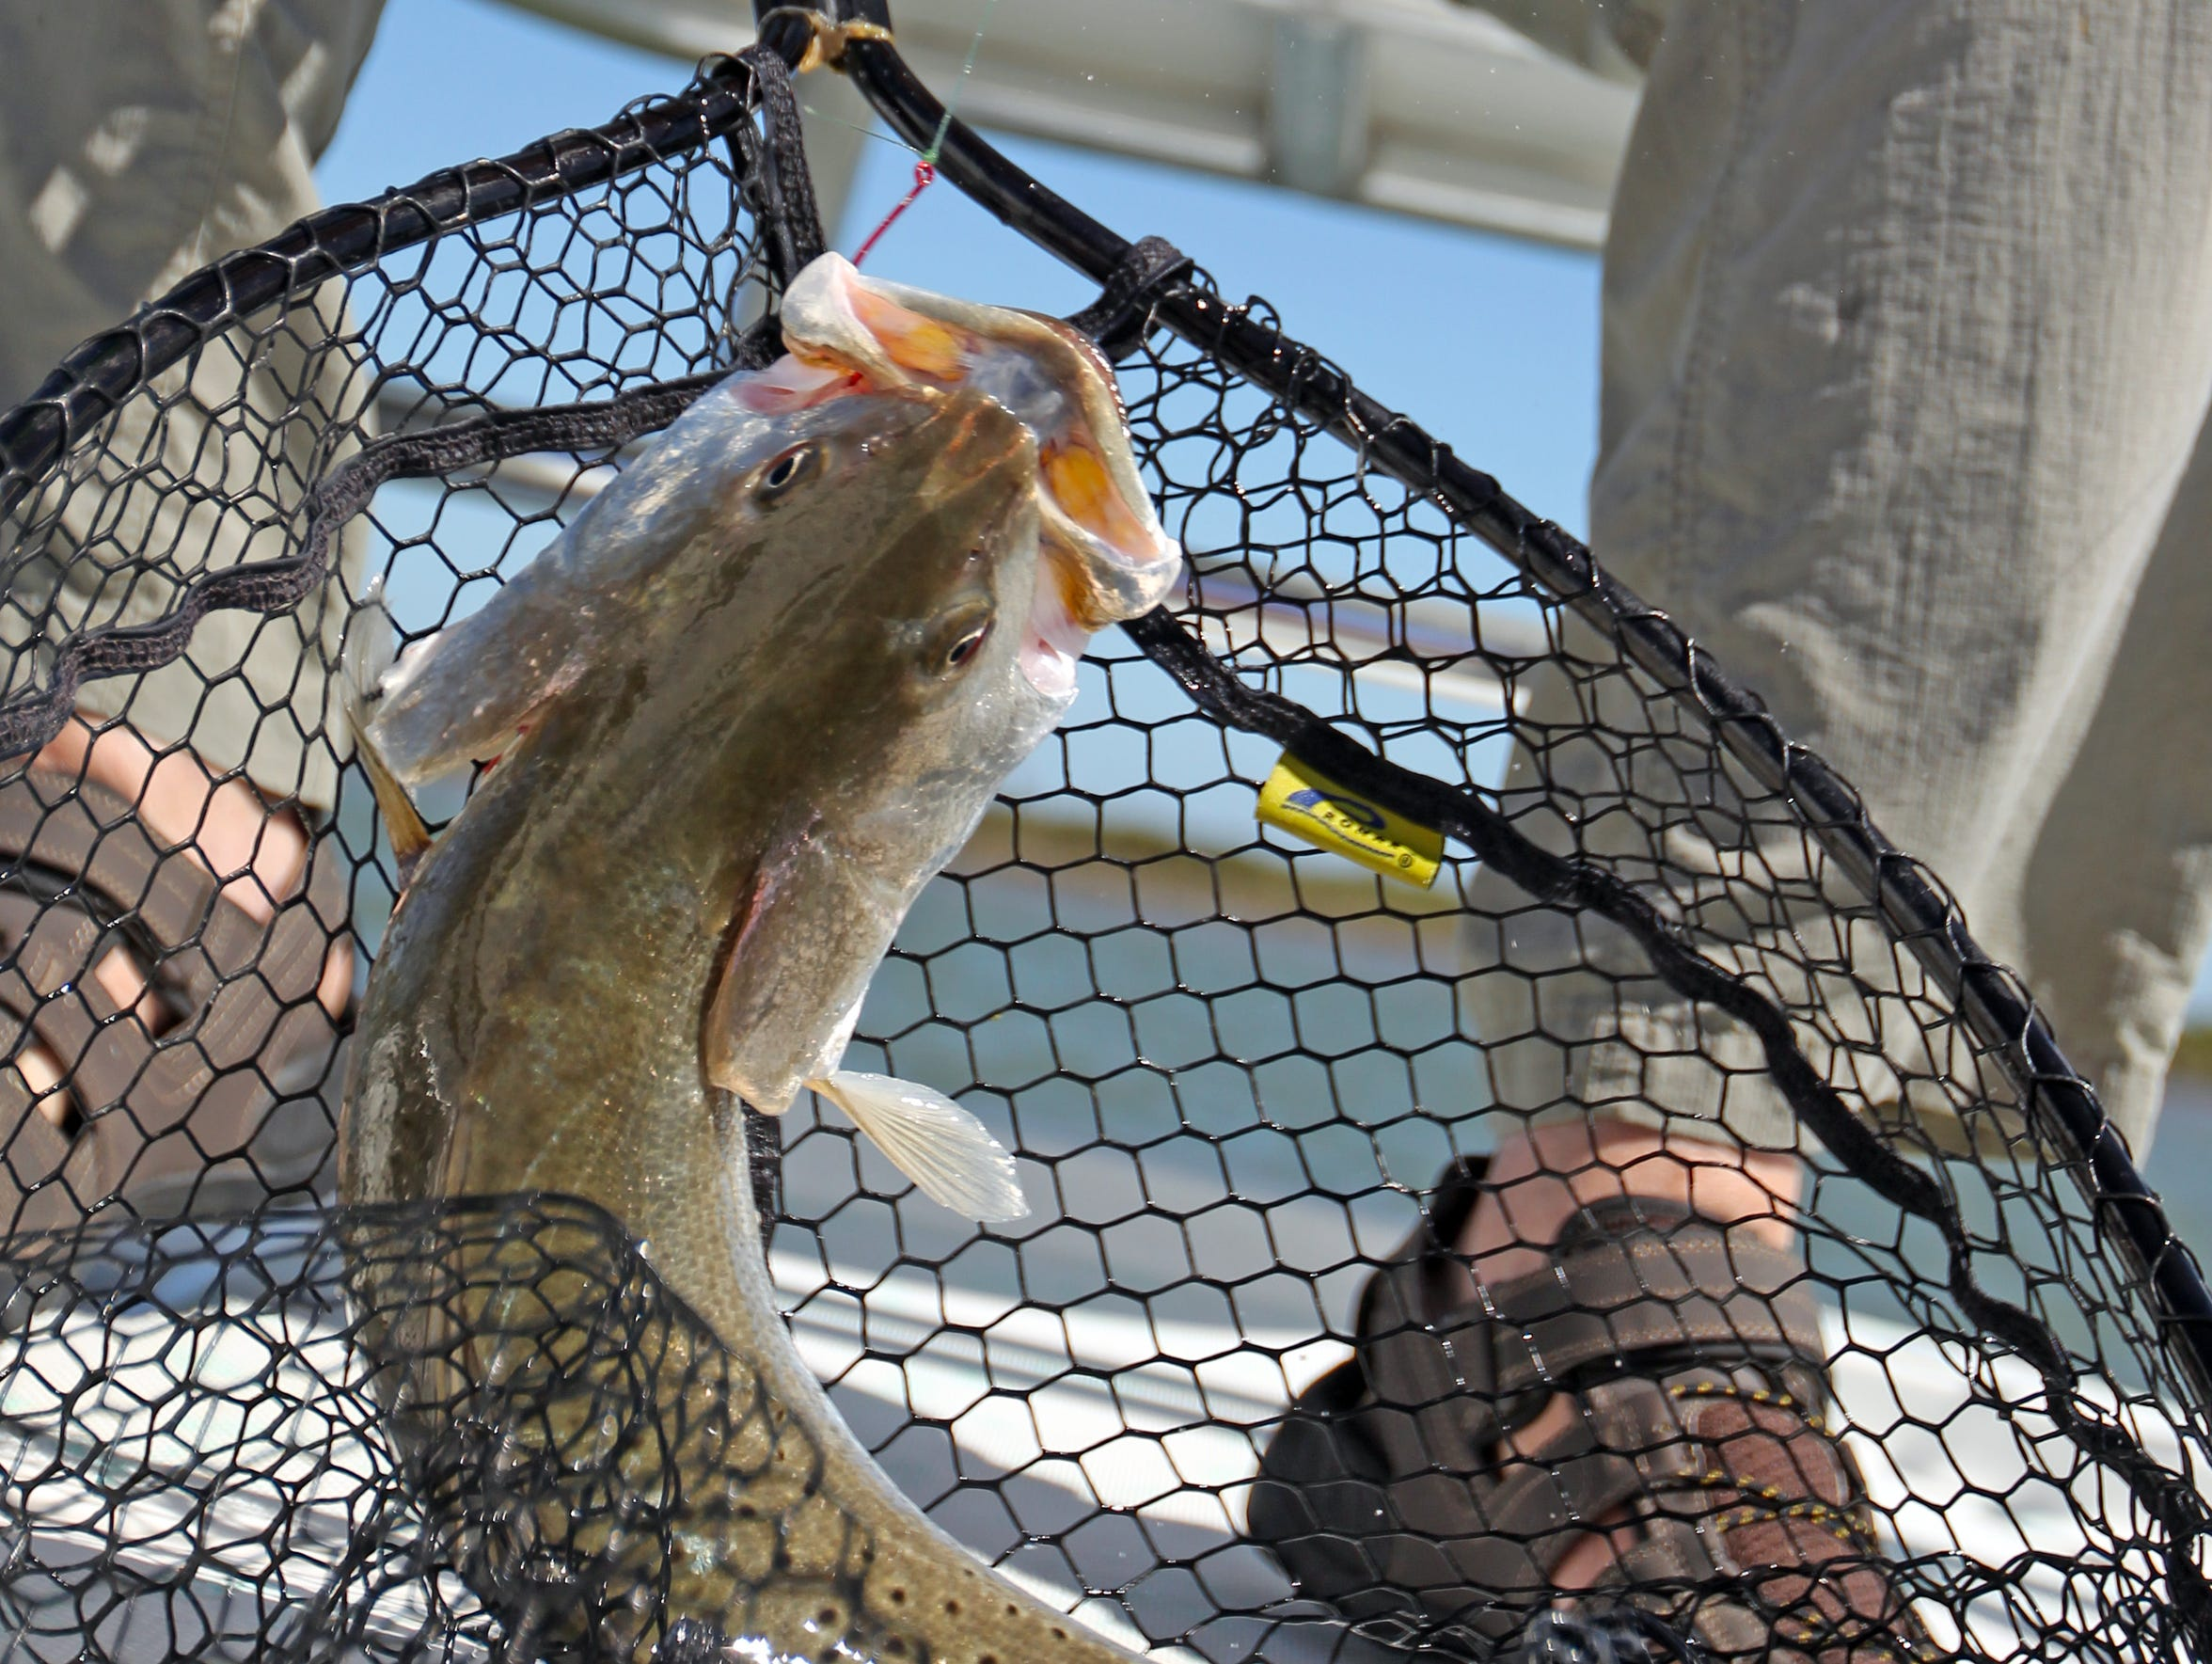 Speckled trout is the most popular game fish among Texas coastal anglers. Ask prospective guides which species he plans to target and by what means and methods.